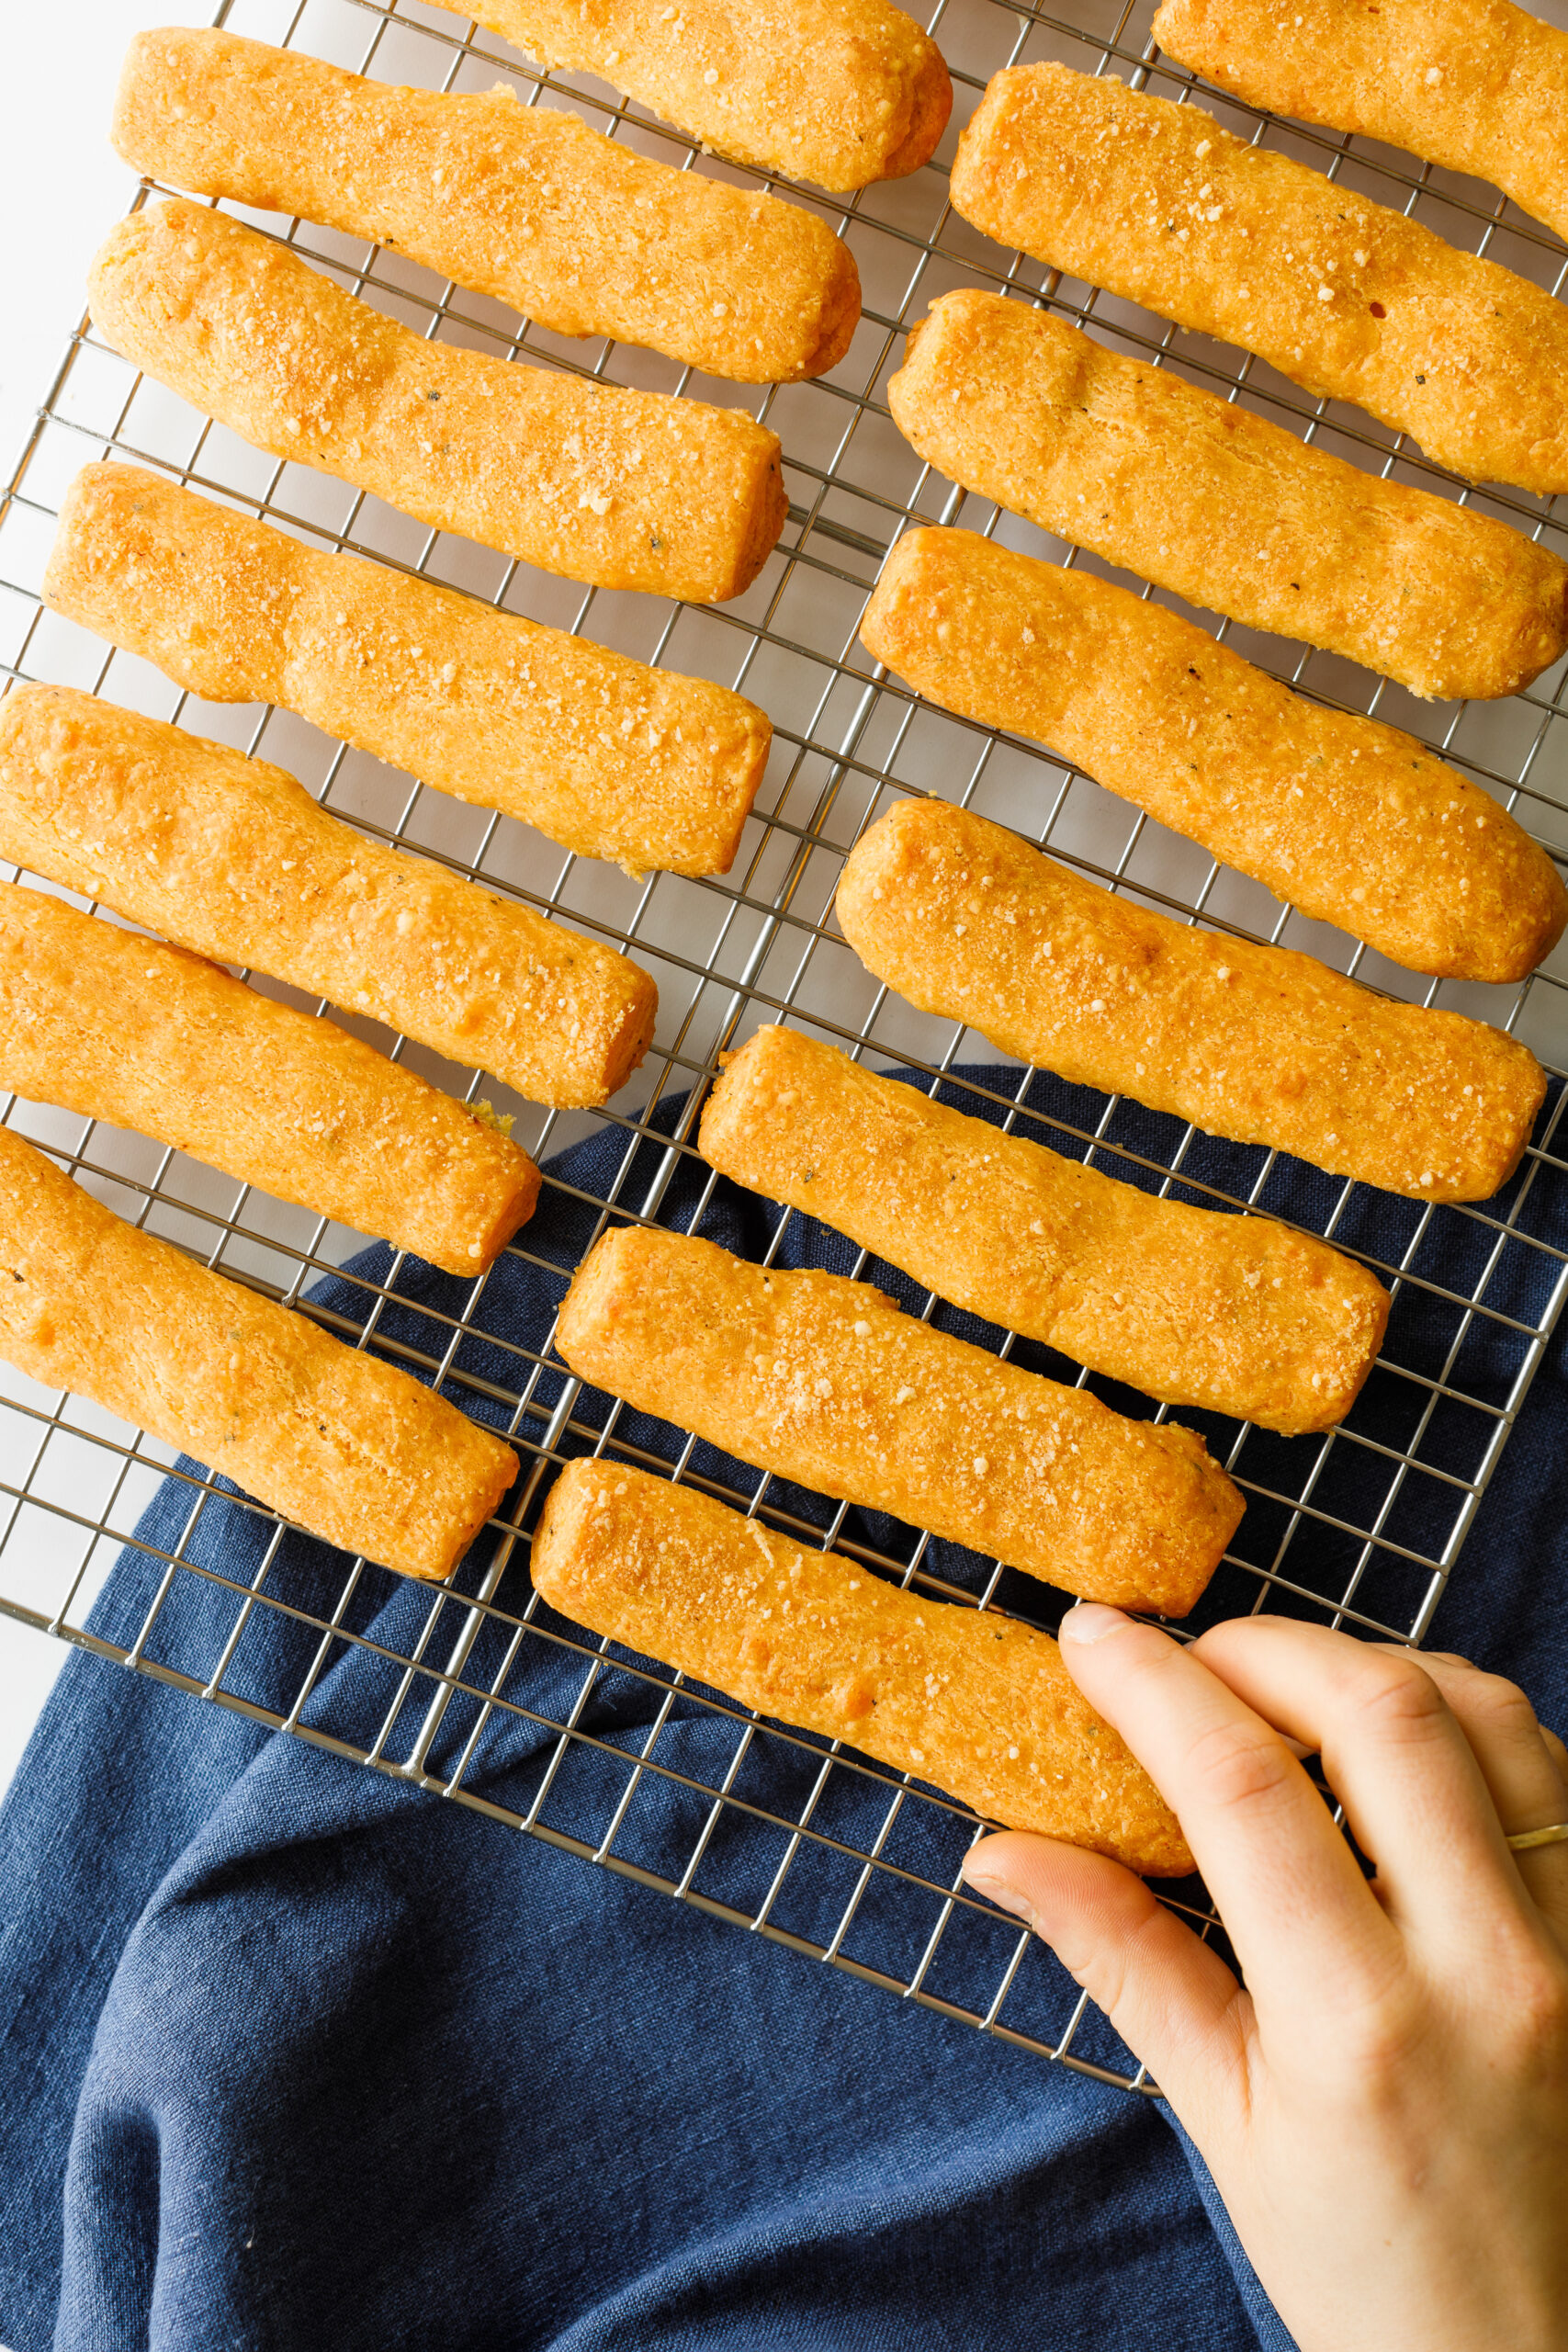 The Parmesan and Sharp Cheddar Cheese Straws on a cooling rack, with a hand reaching for one.